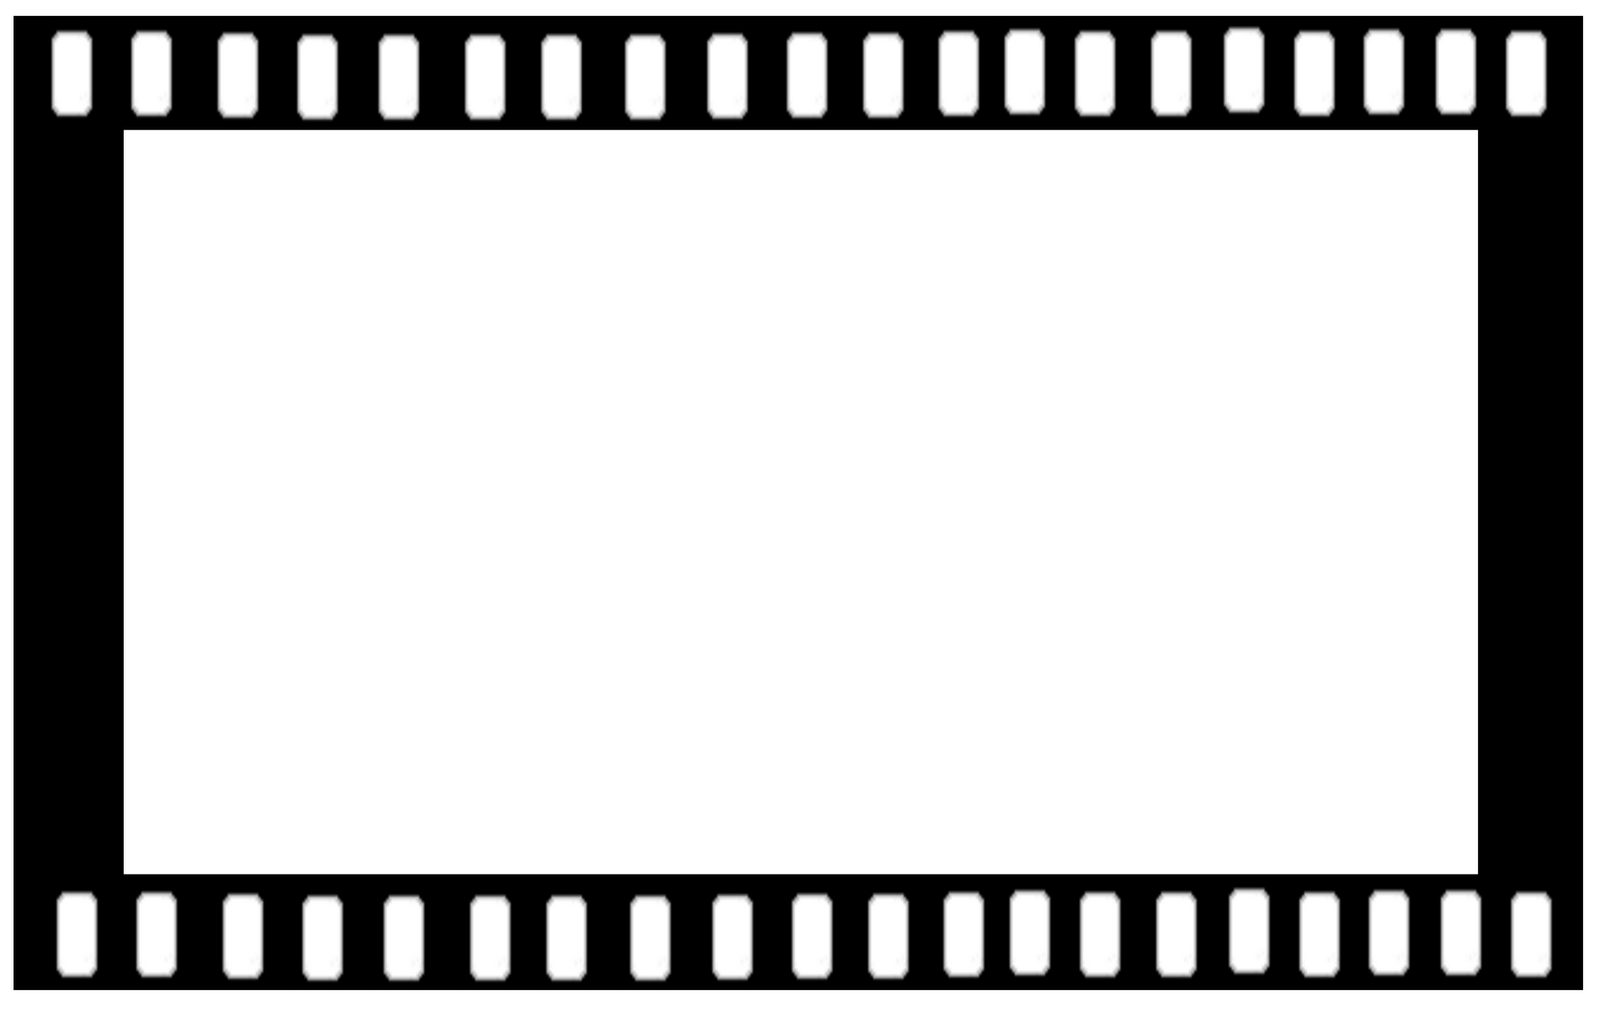 Movie clipart film role. Border panda free images